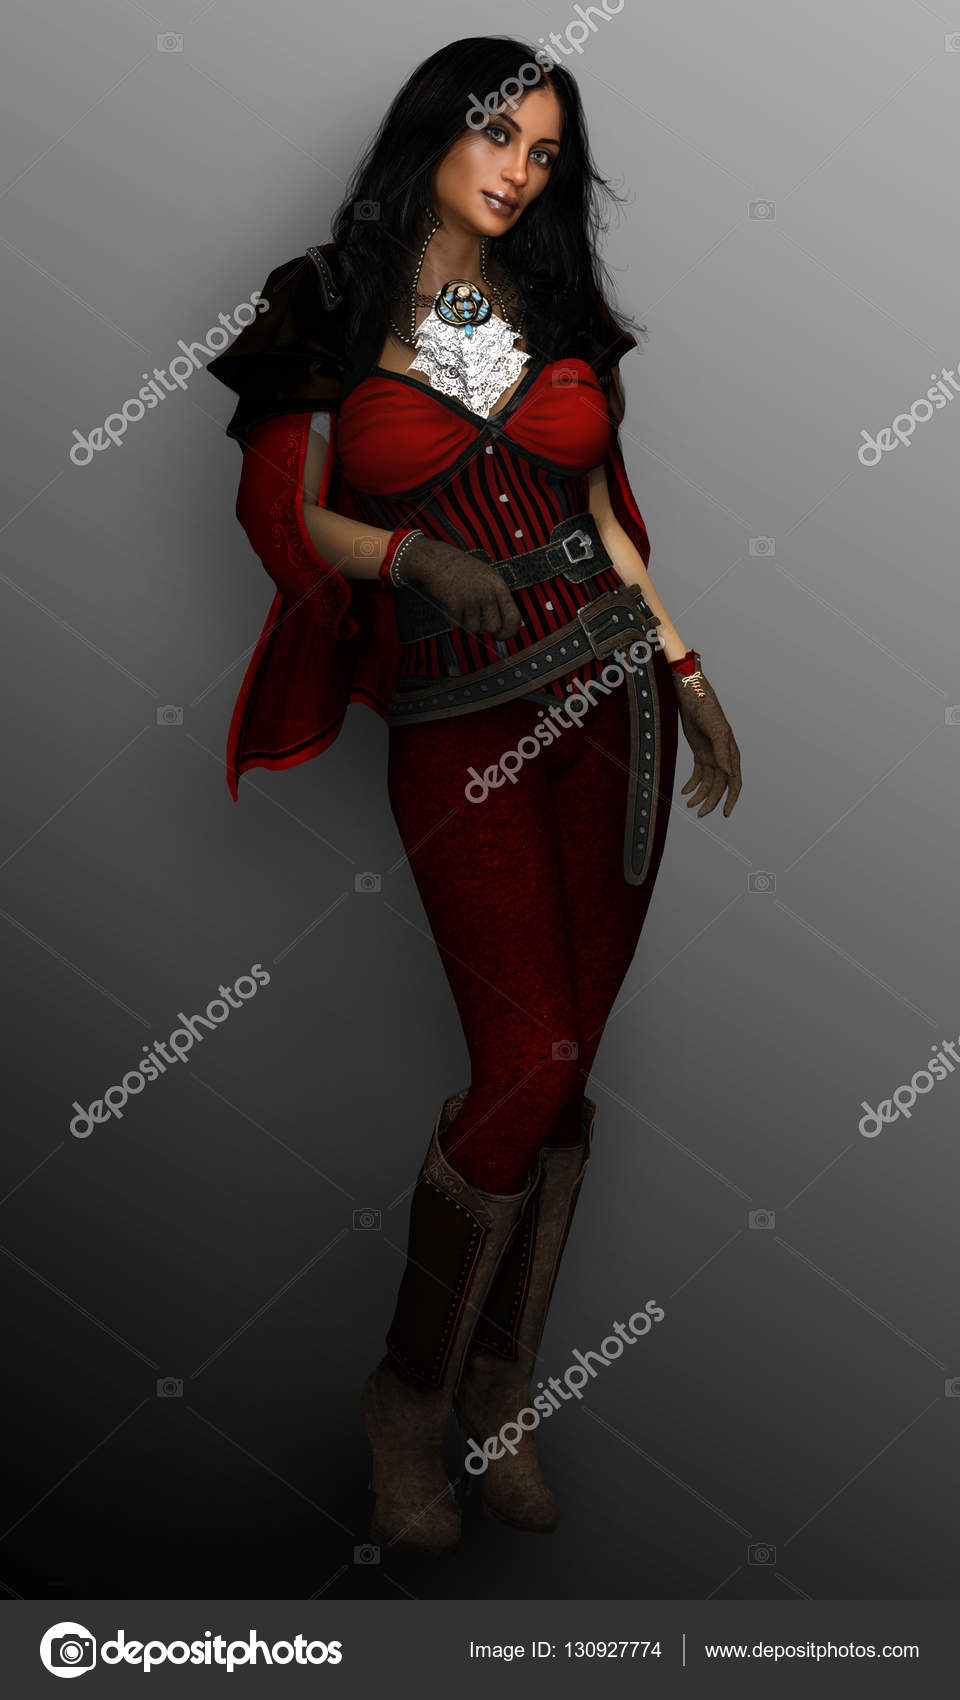 Fantasy pirate woman not torture